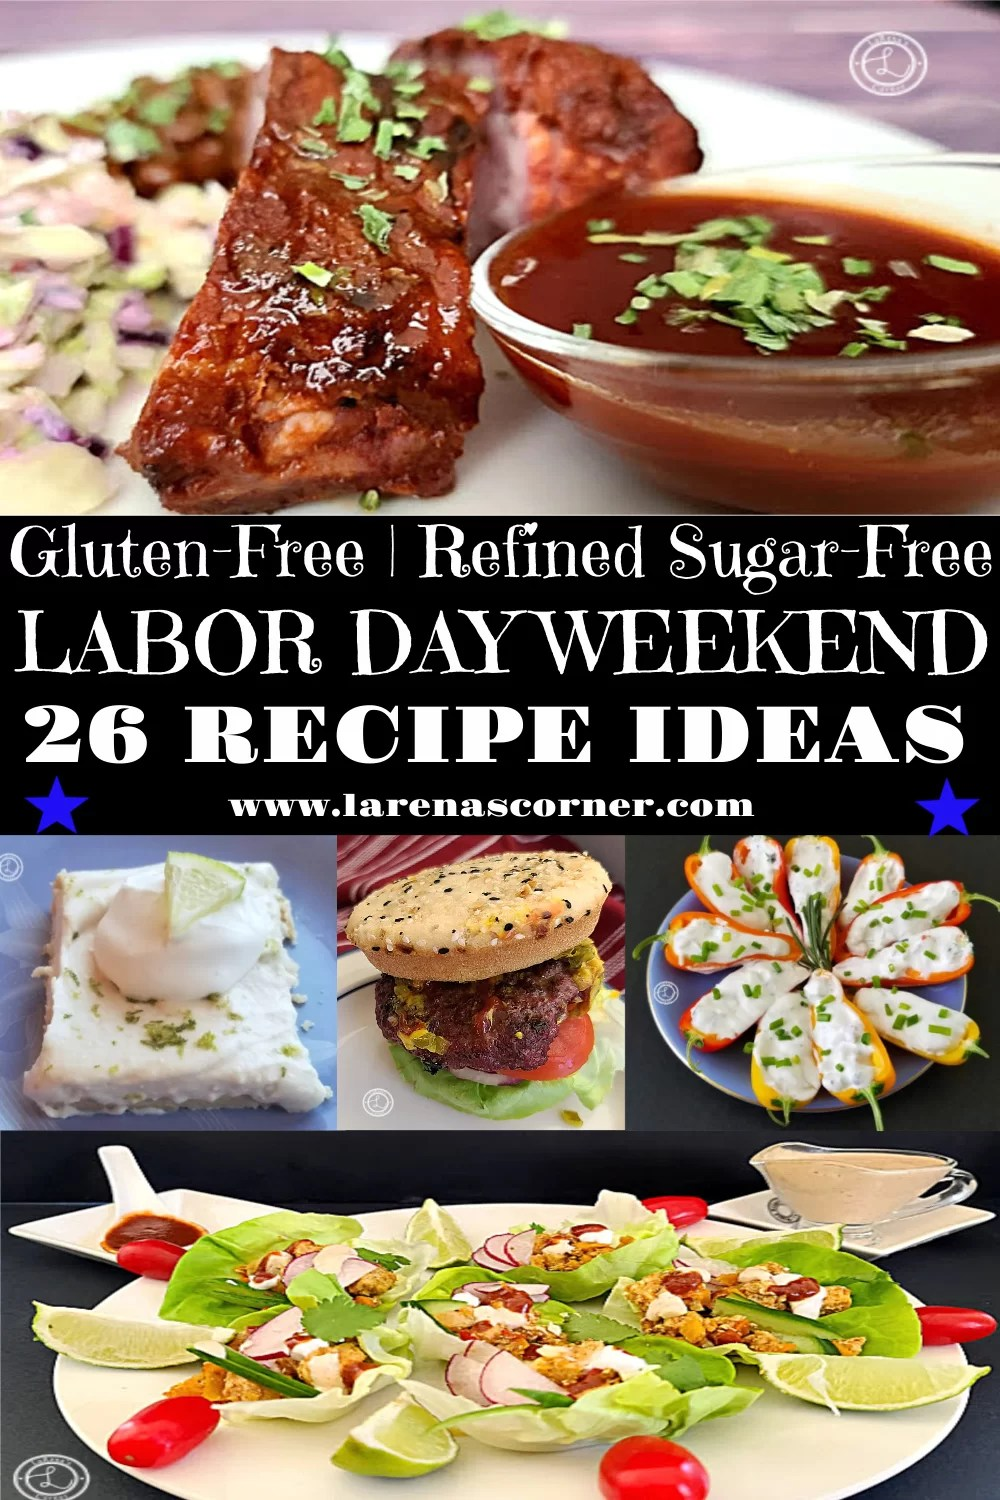 Labor Day Recipe Ideas. Including Baby Back Ribs with homemade BBQ Sauce, Key Lime Cheesecake, Buffalo Burgers, Lobster Dip, and Chicken Lettuce Wrapped Tacos